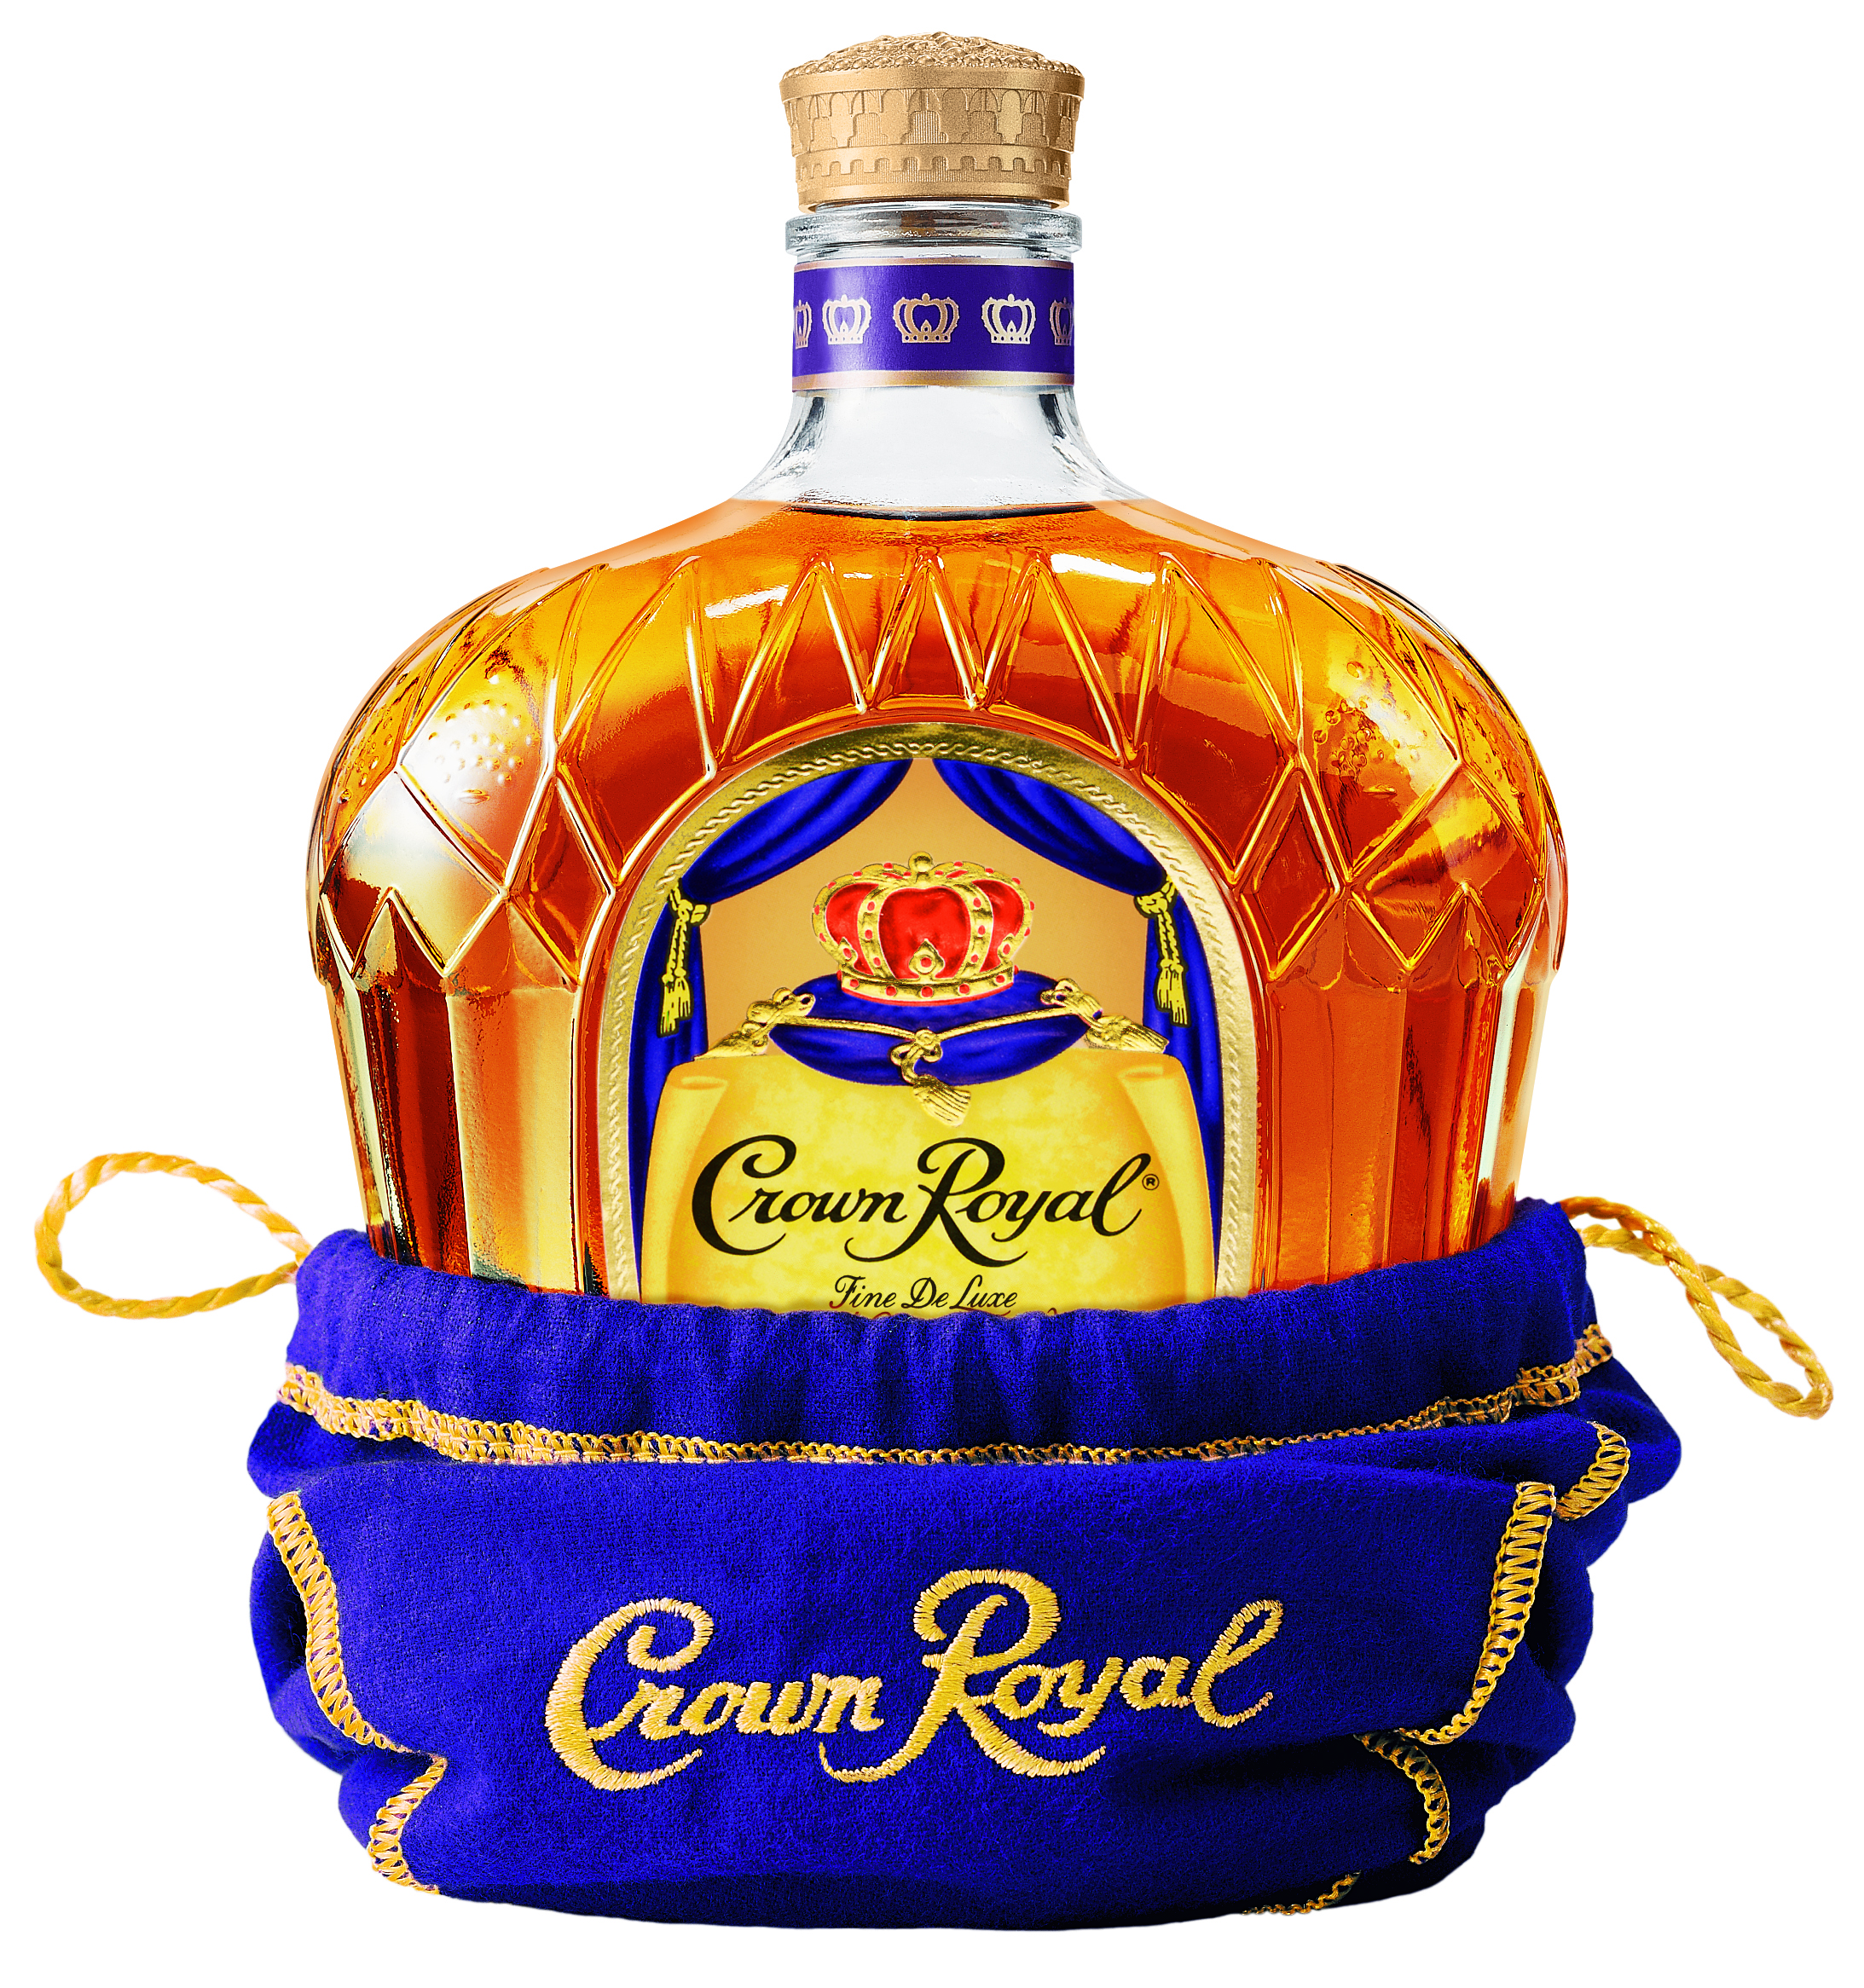 Crown royal svg black and white stock Crown Royal Page 1 svg black and white stock